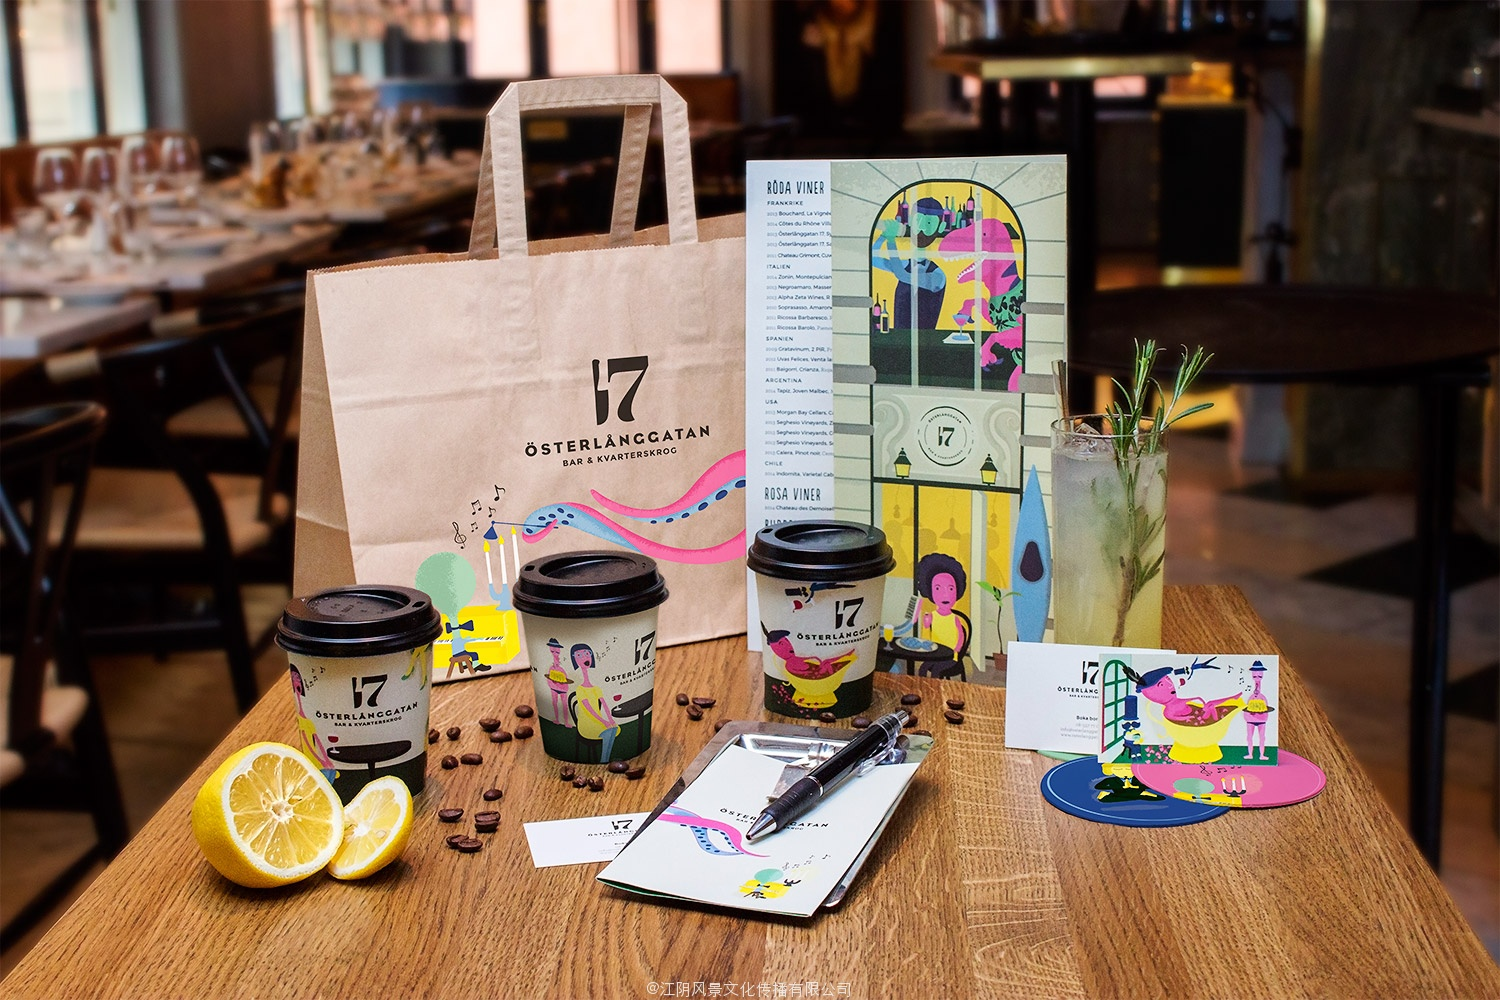 Brand identity, bags, menus and coffee cups for Stockholm restaurant Österlånggatan 17 by Lobby Design